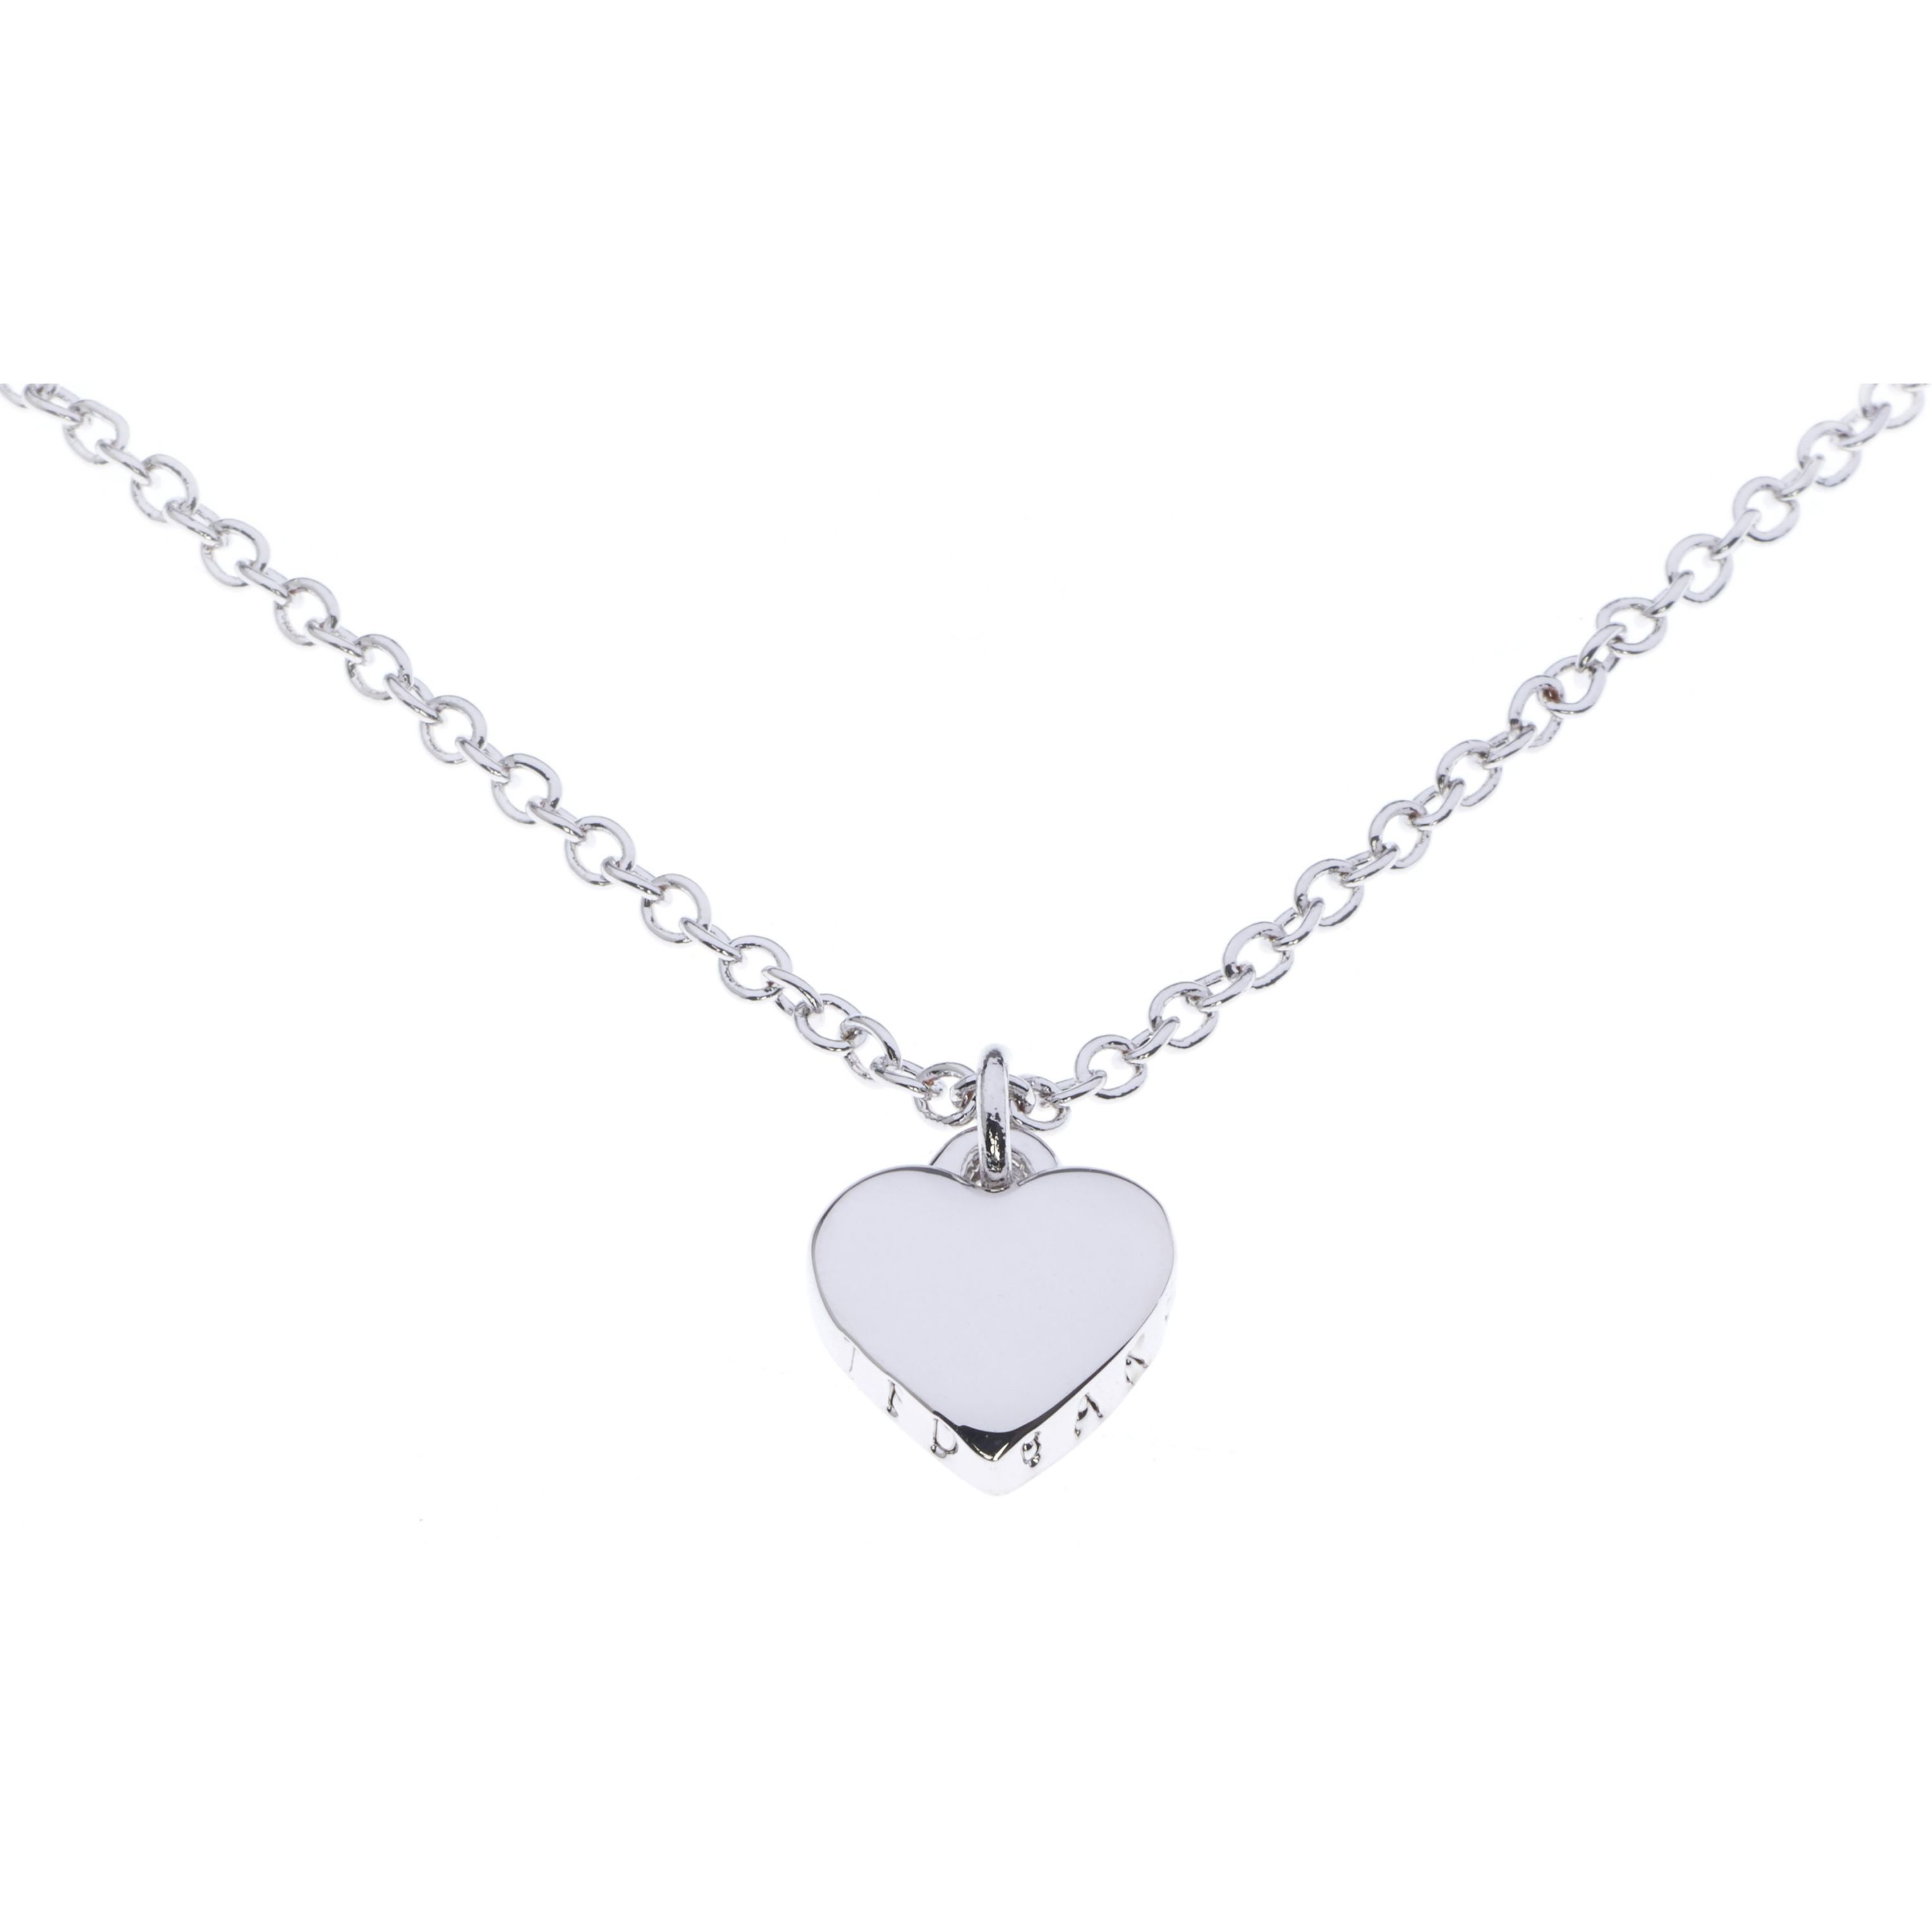 Ladies ted baker jewellery pvd silver plated hara tiny heart ladies ted baker jewellery pvd silver plated hara tiny heart pendant necklace tbj1145 01 03 watchshop mozeypictures Gallery